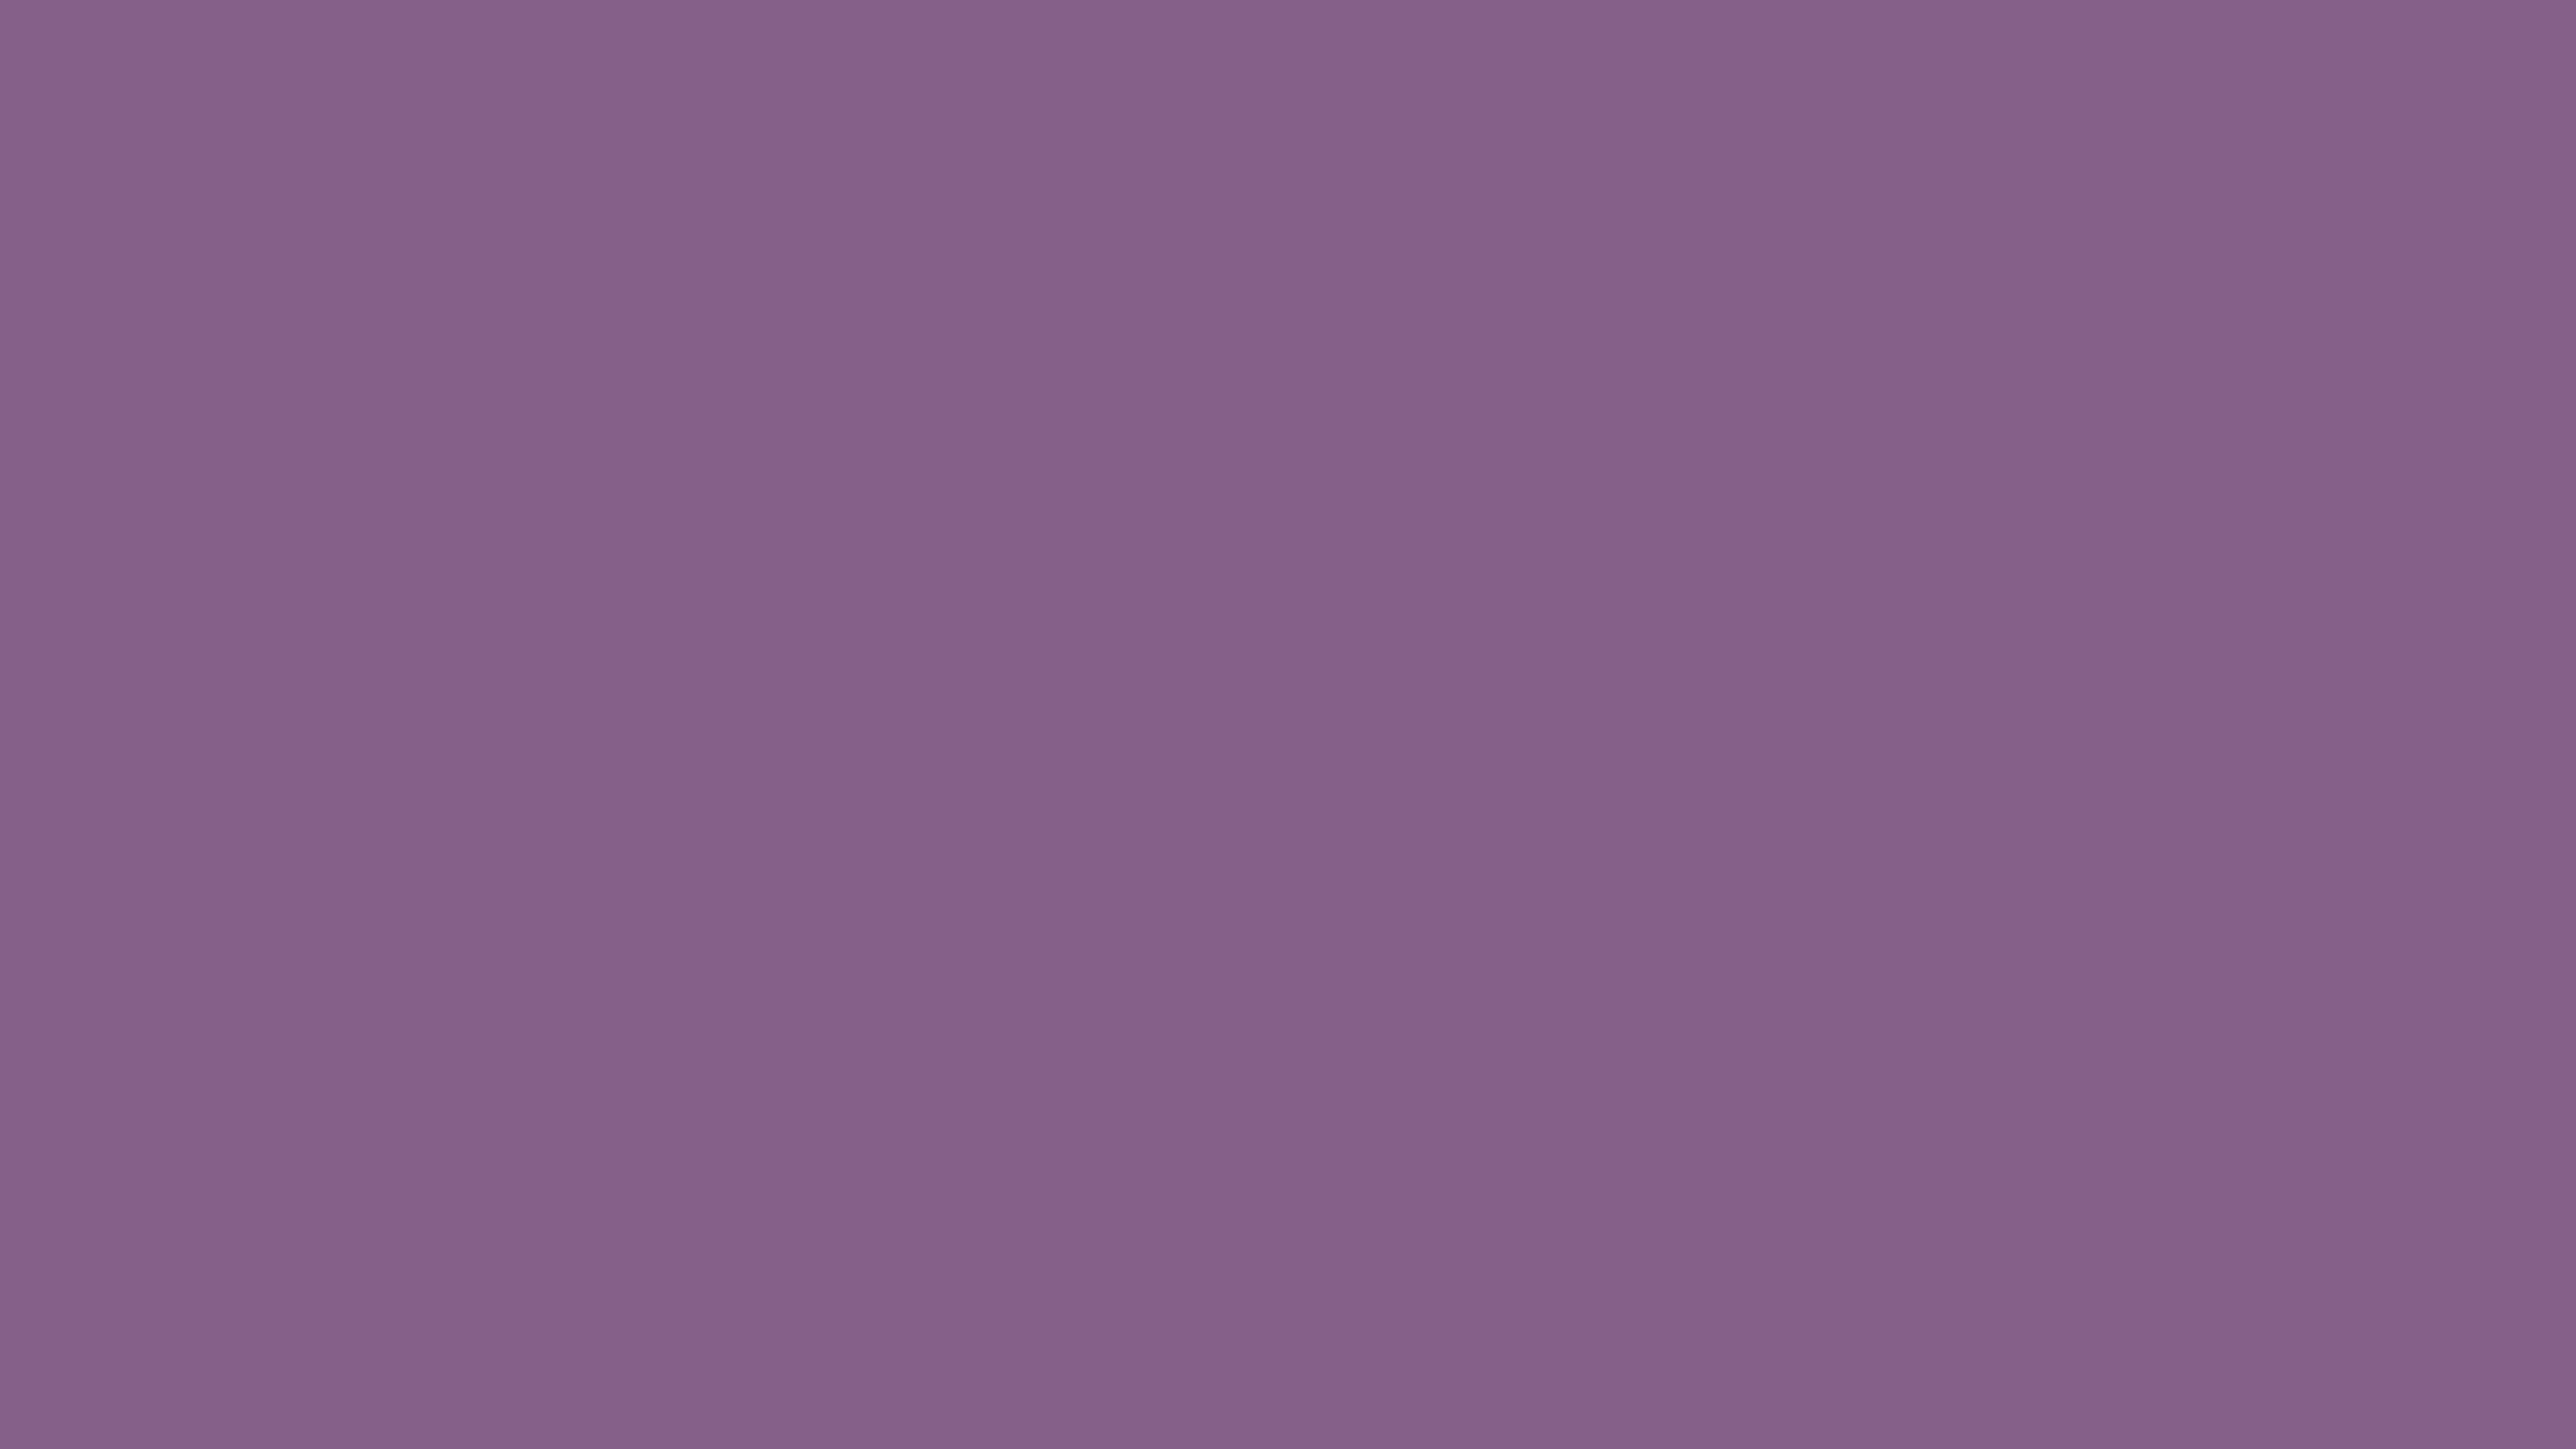 4096x2304 Chinese Violet Solid Color Background